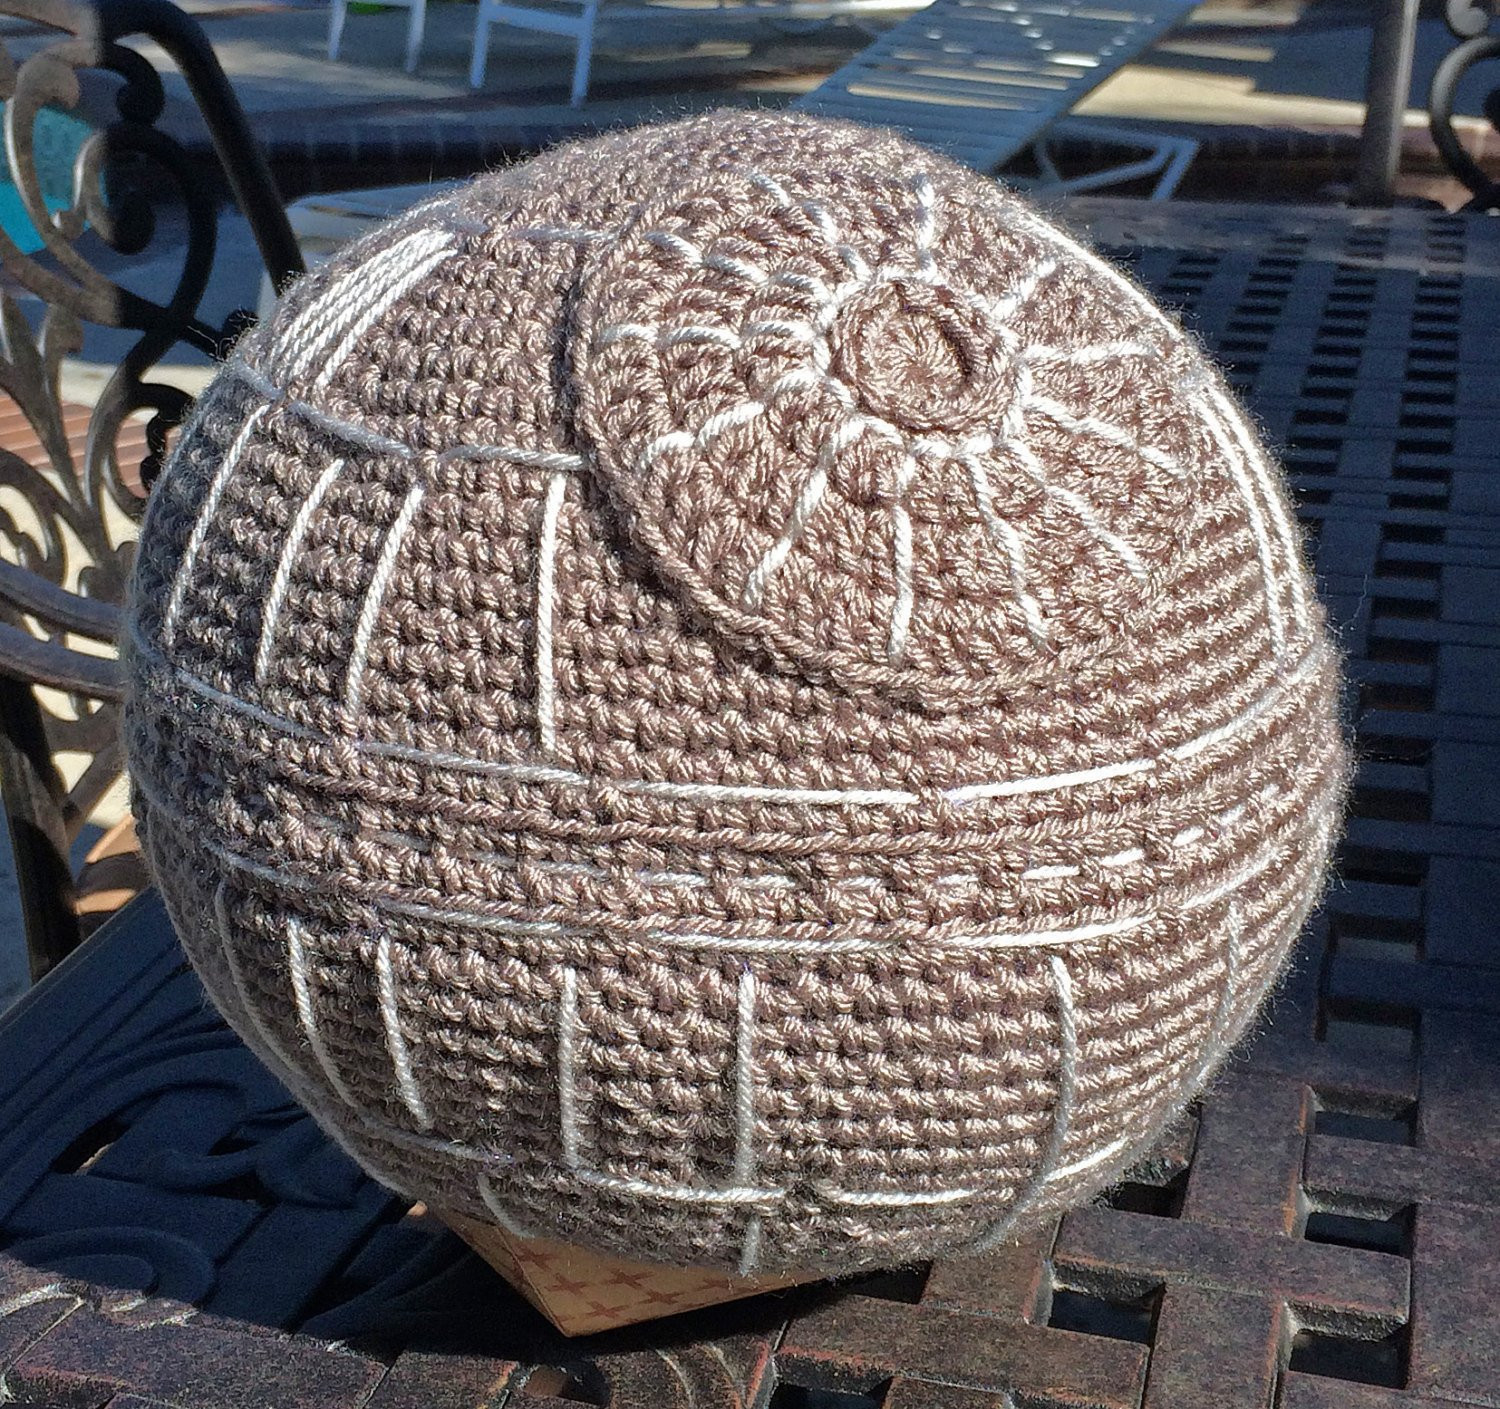 Fresh Star Wars Death Star Pillow Handmade Crochet Plush toy Decor Handmade Crochet Of Delightful 40 Pics Handmade Crochet